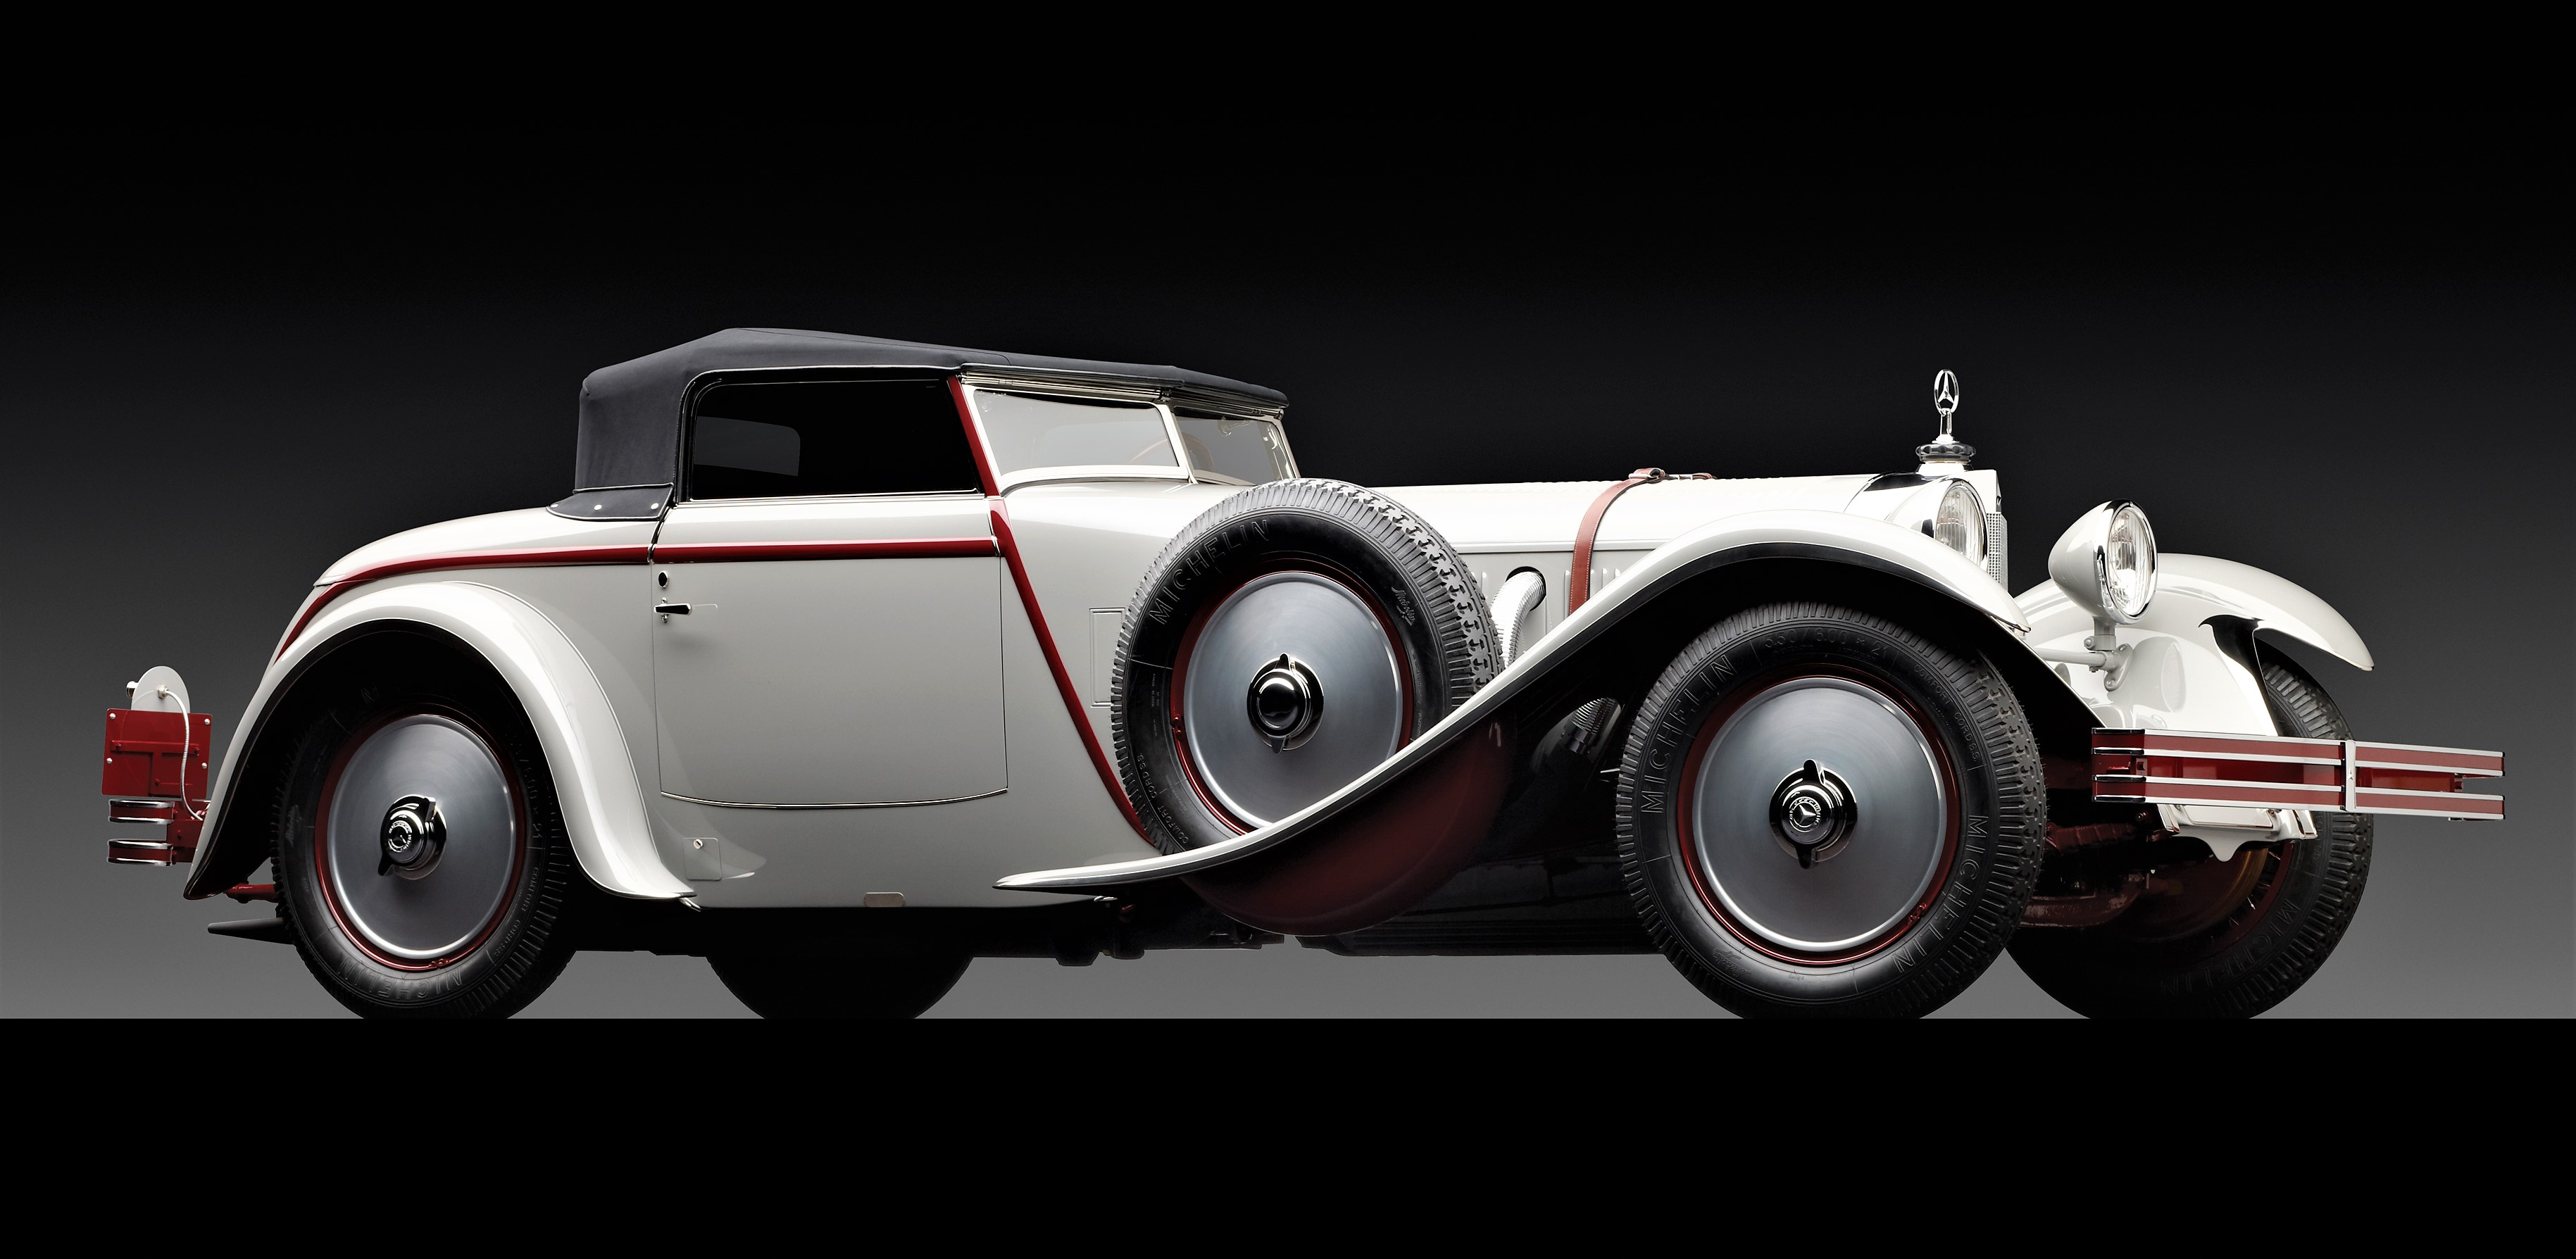 A 1928 Mercedes-Benz 680 S Torpedo-Sport valued at $7 million will be offered